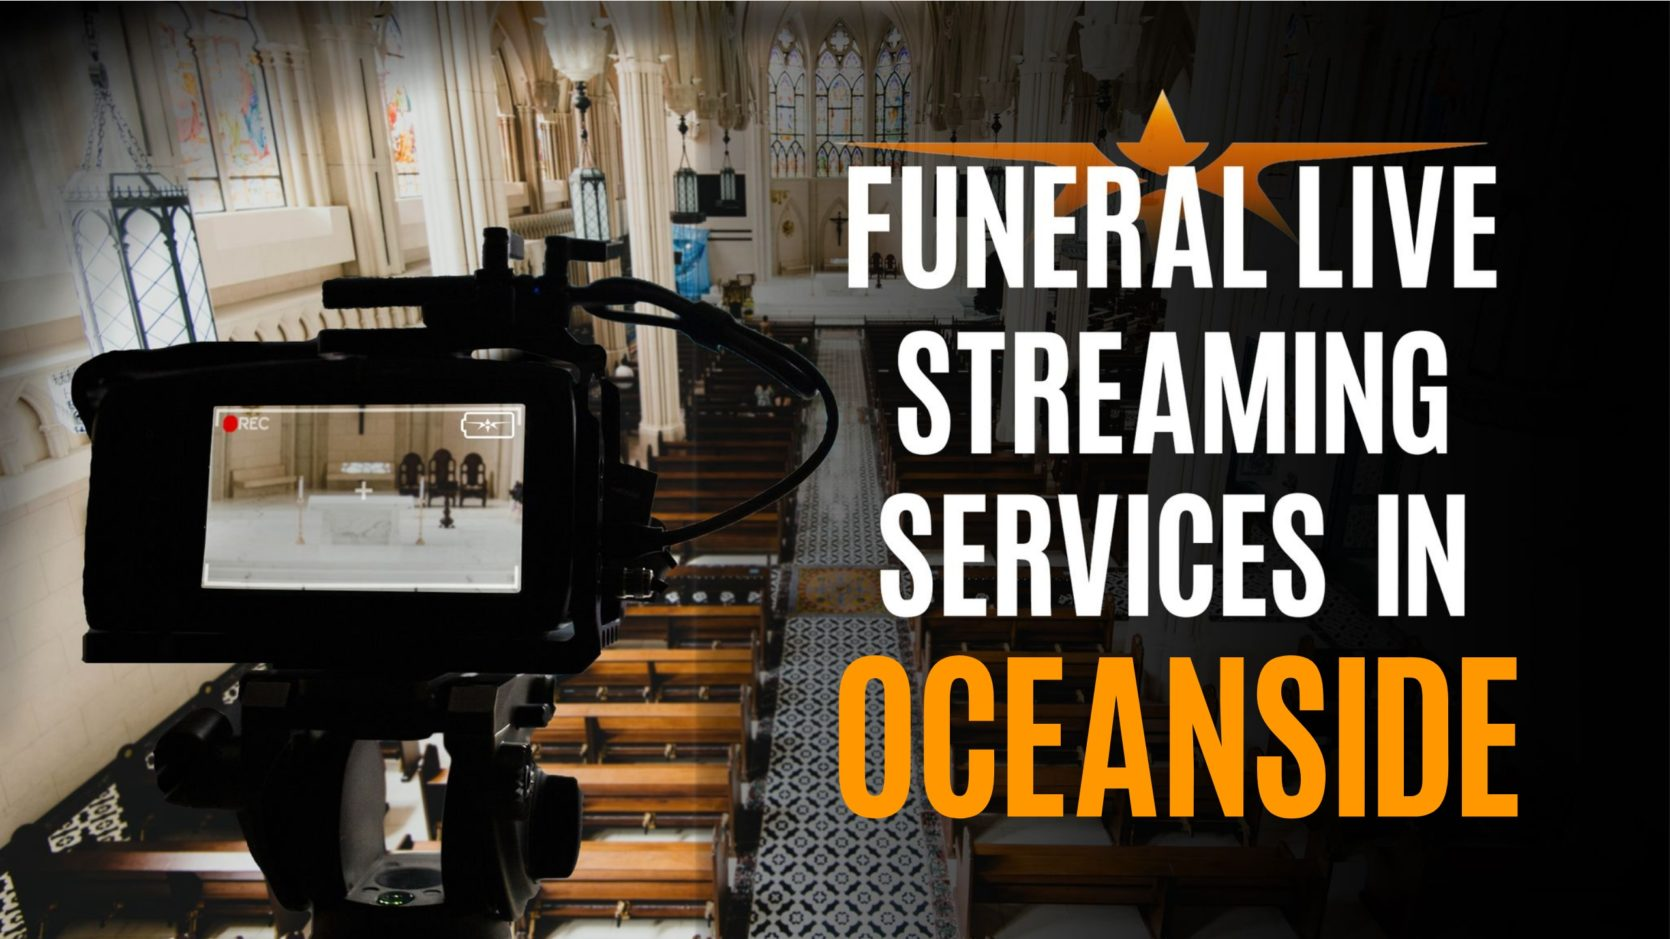 Funeral Live Streaming Services in Oceanside